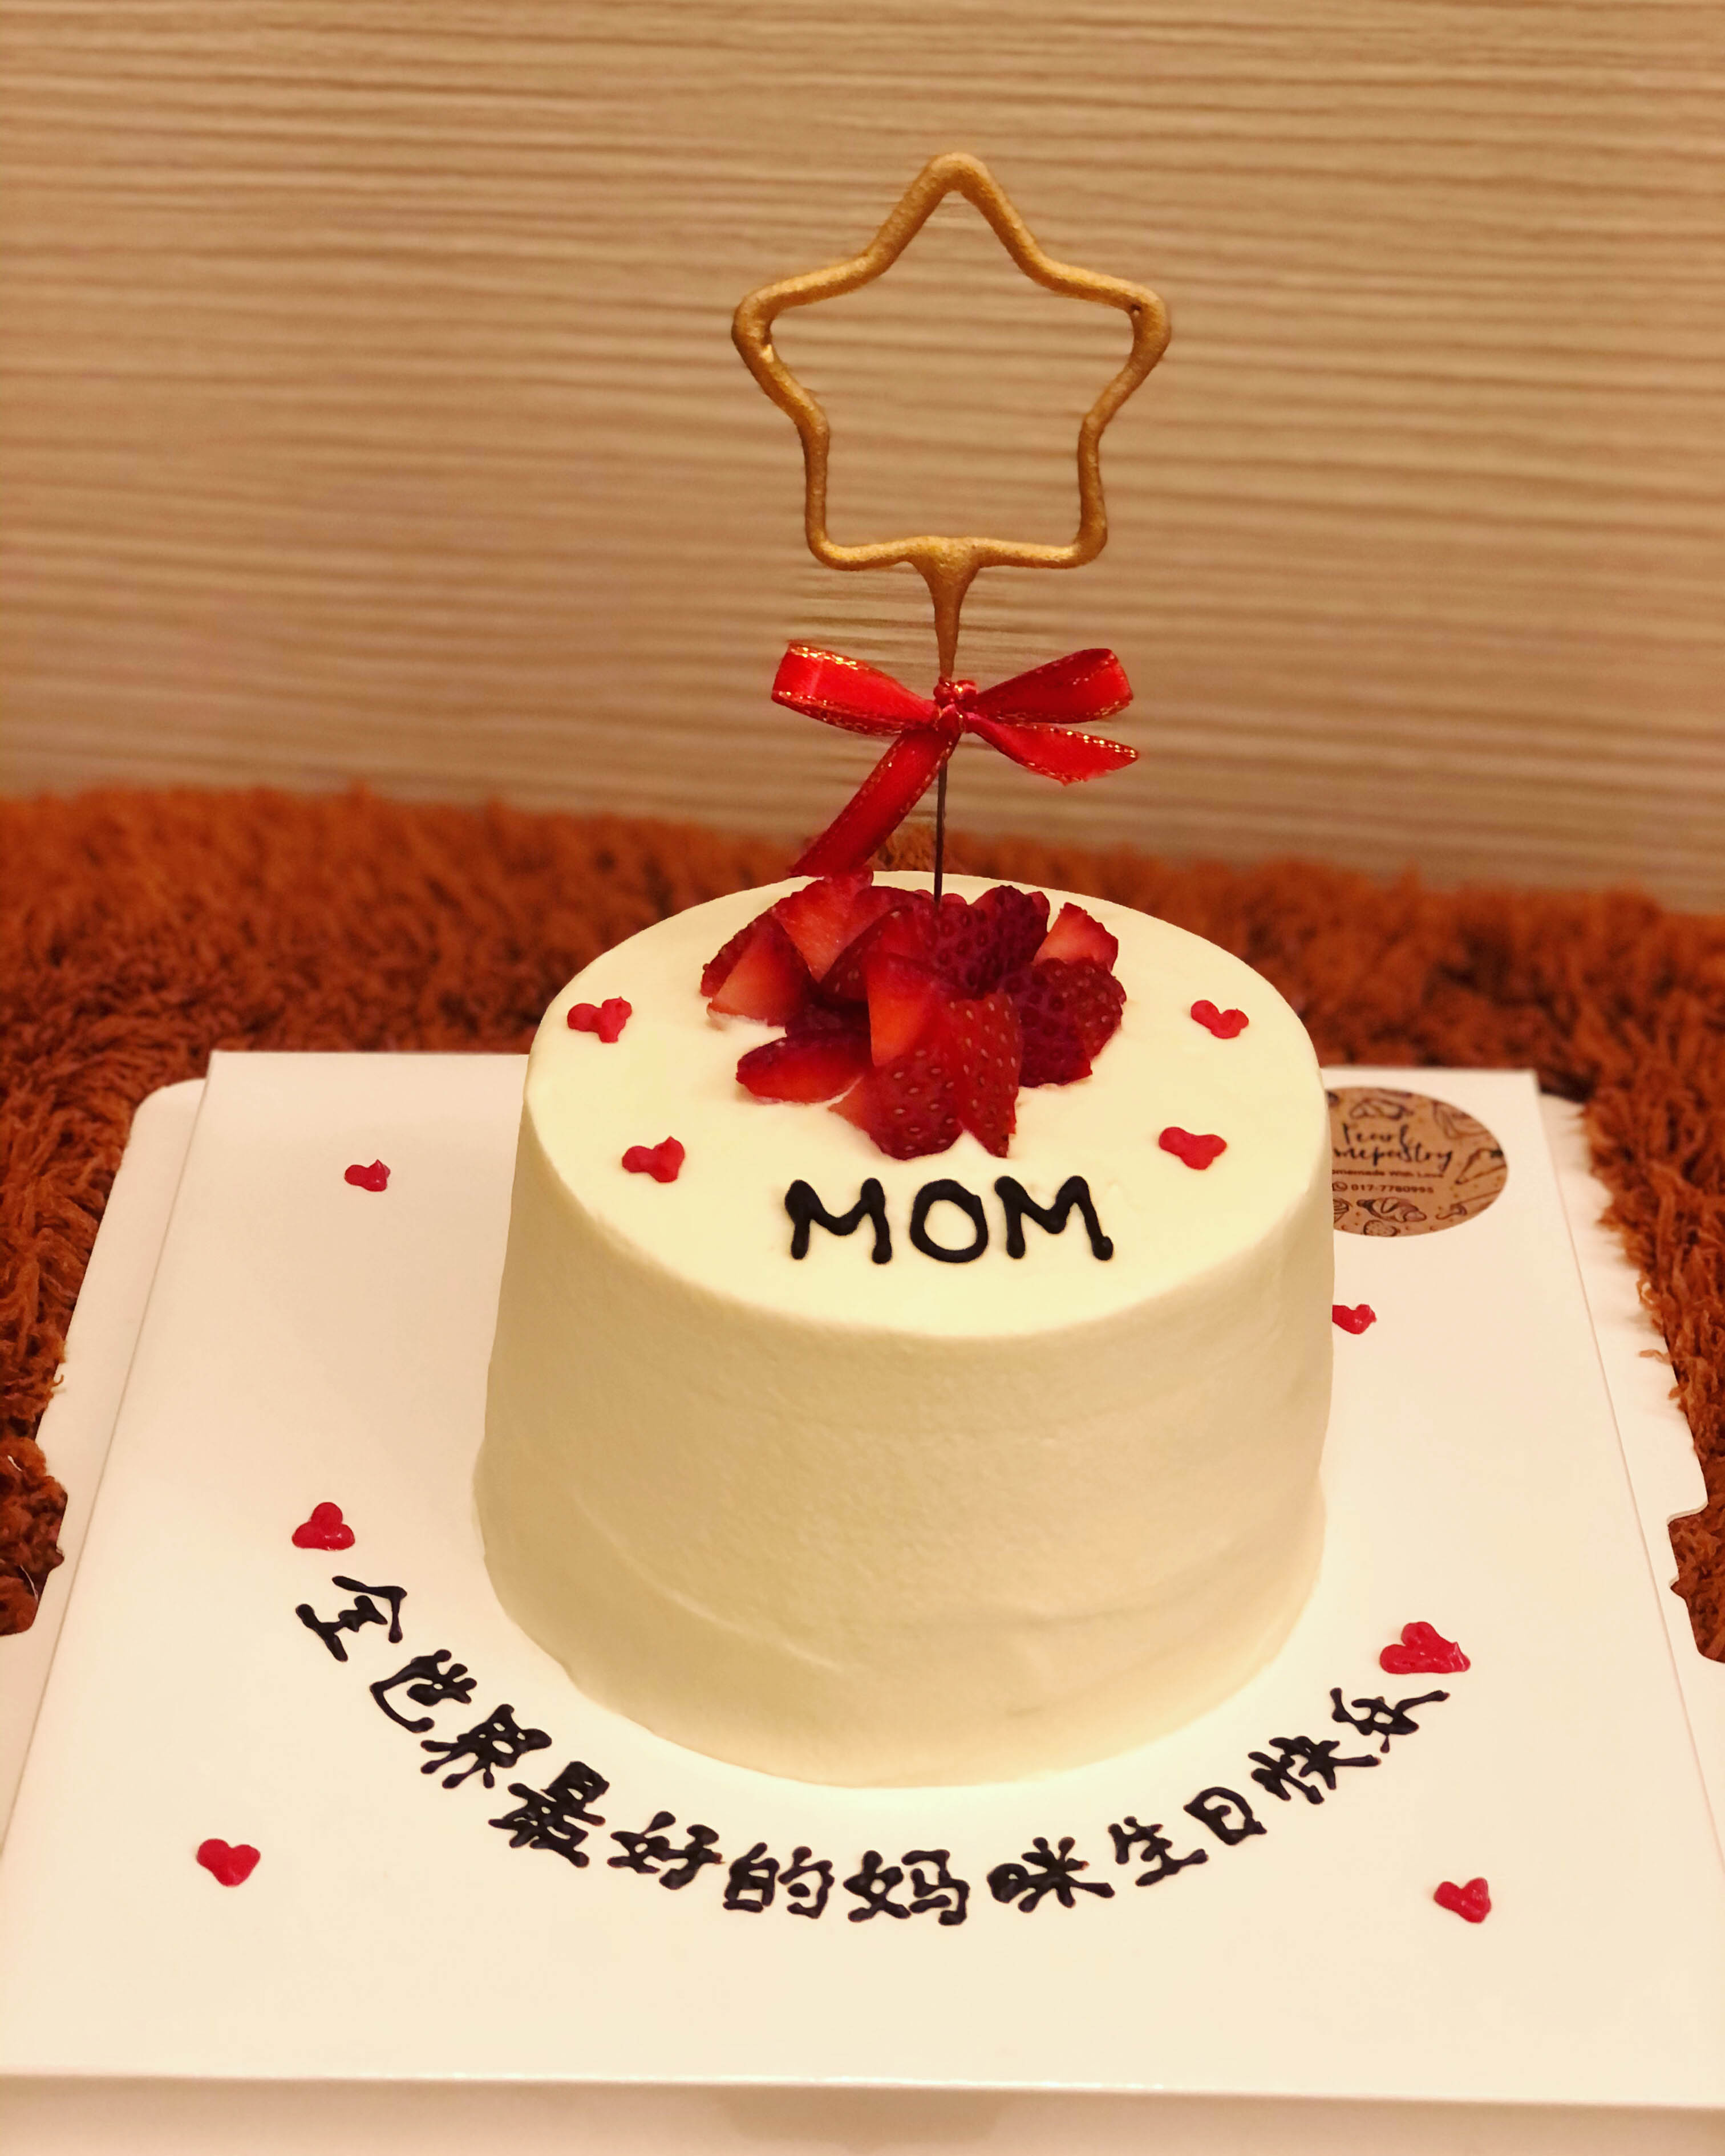 Pearl Homepastry mothers day cake malaysia